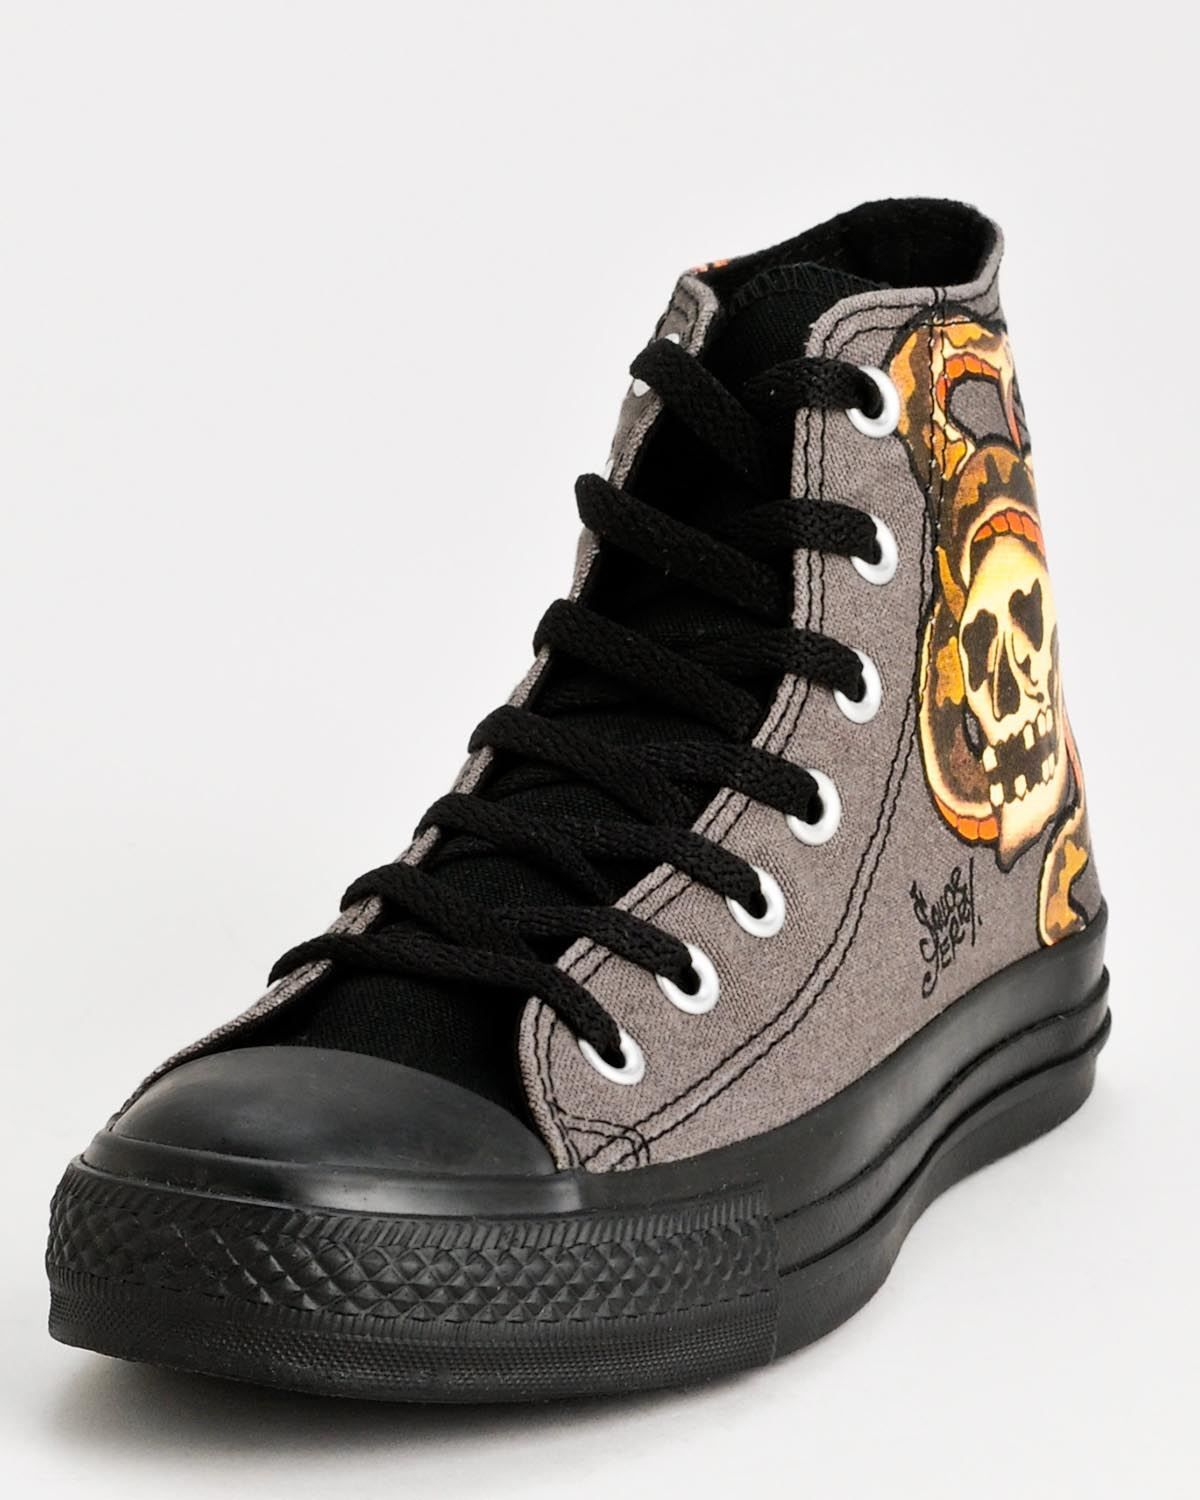 ee84887e69e4 Product Name Converse All Star Chuck Taylor Sailor Jerry Hi-Top Unisex  Sneakers at Modnique.com